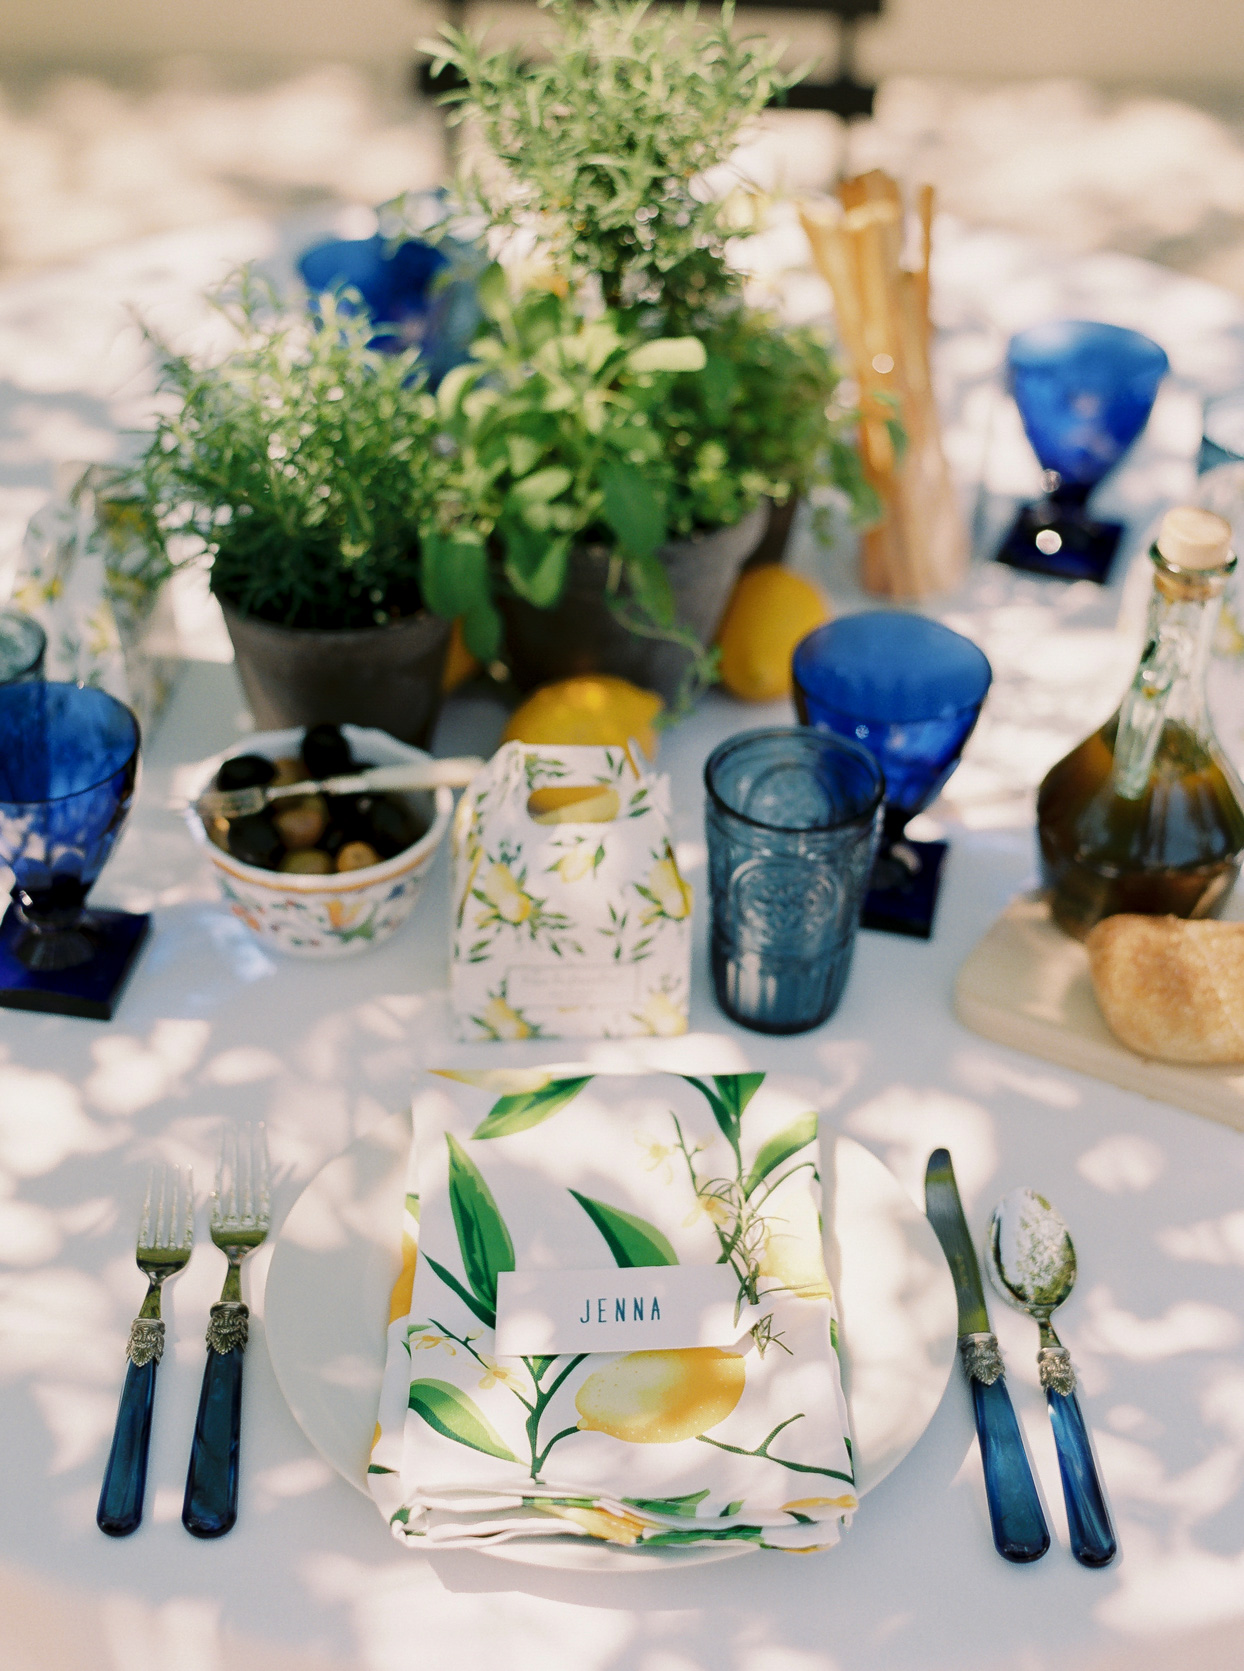 guest table setting with blue silverware and lemon printed napkins